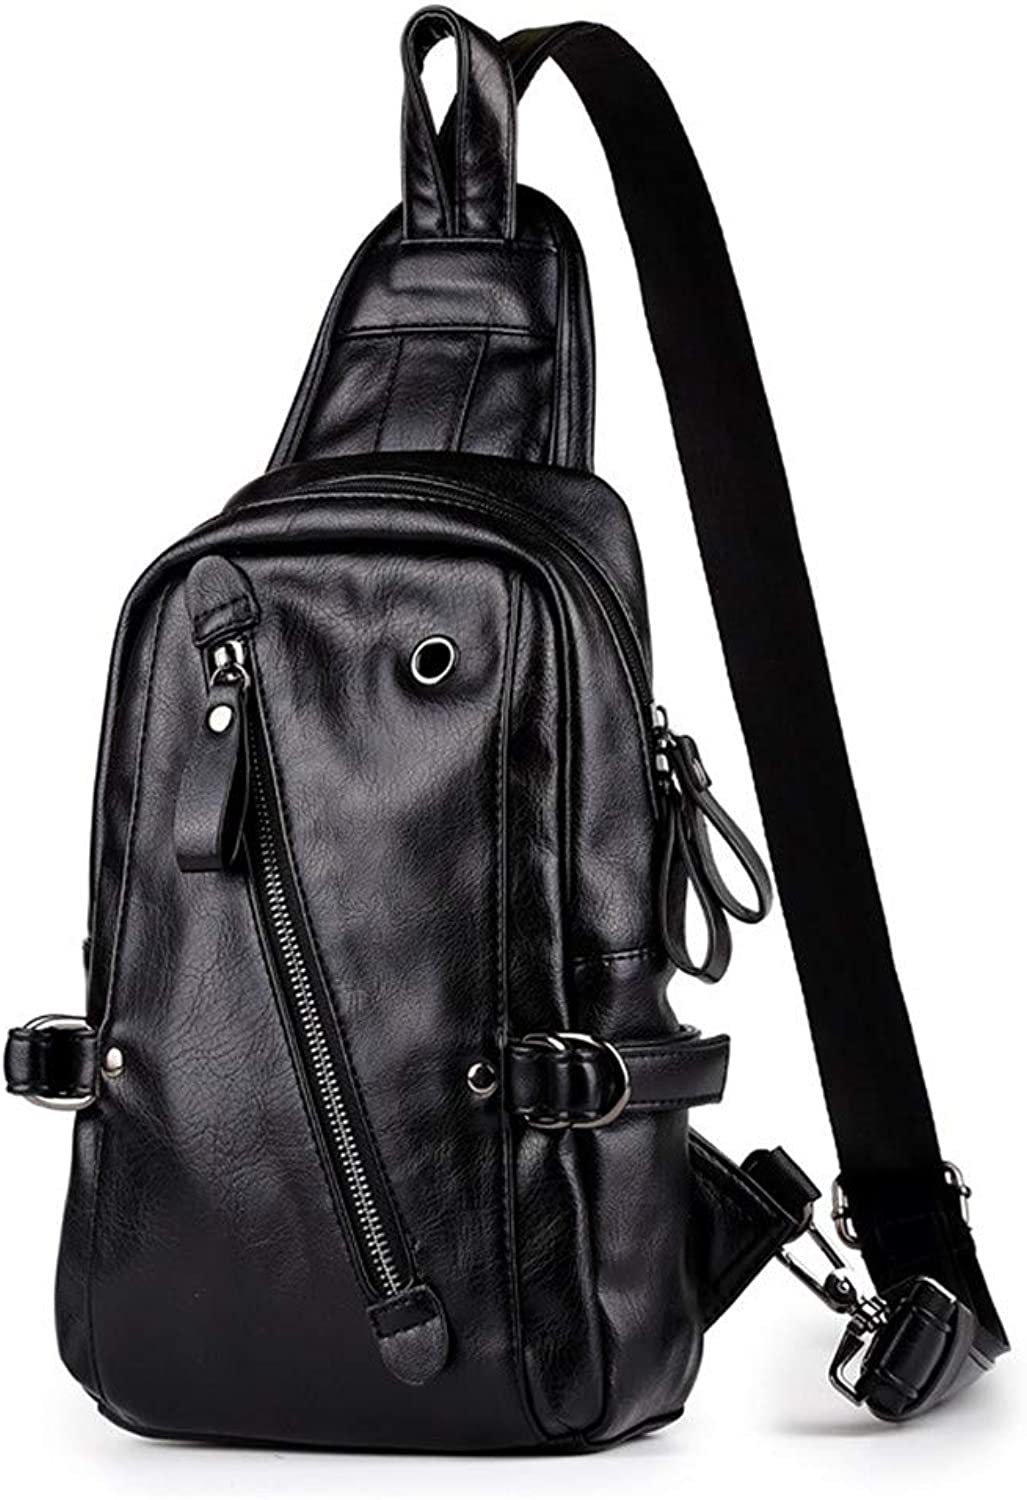 Sling Bag, Men Chest Bag with Headphone Cable Hole PU Leather Sling Bag Crossbody Shoulder Backpack Travel Bags Causal Daypack Messenger Bag for Outdoor Sports for Bicycle Sport Hiking Travel Bookbag